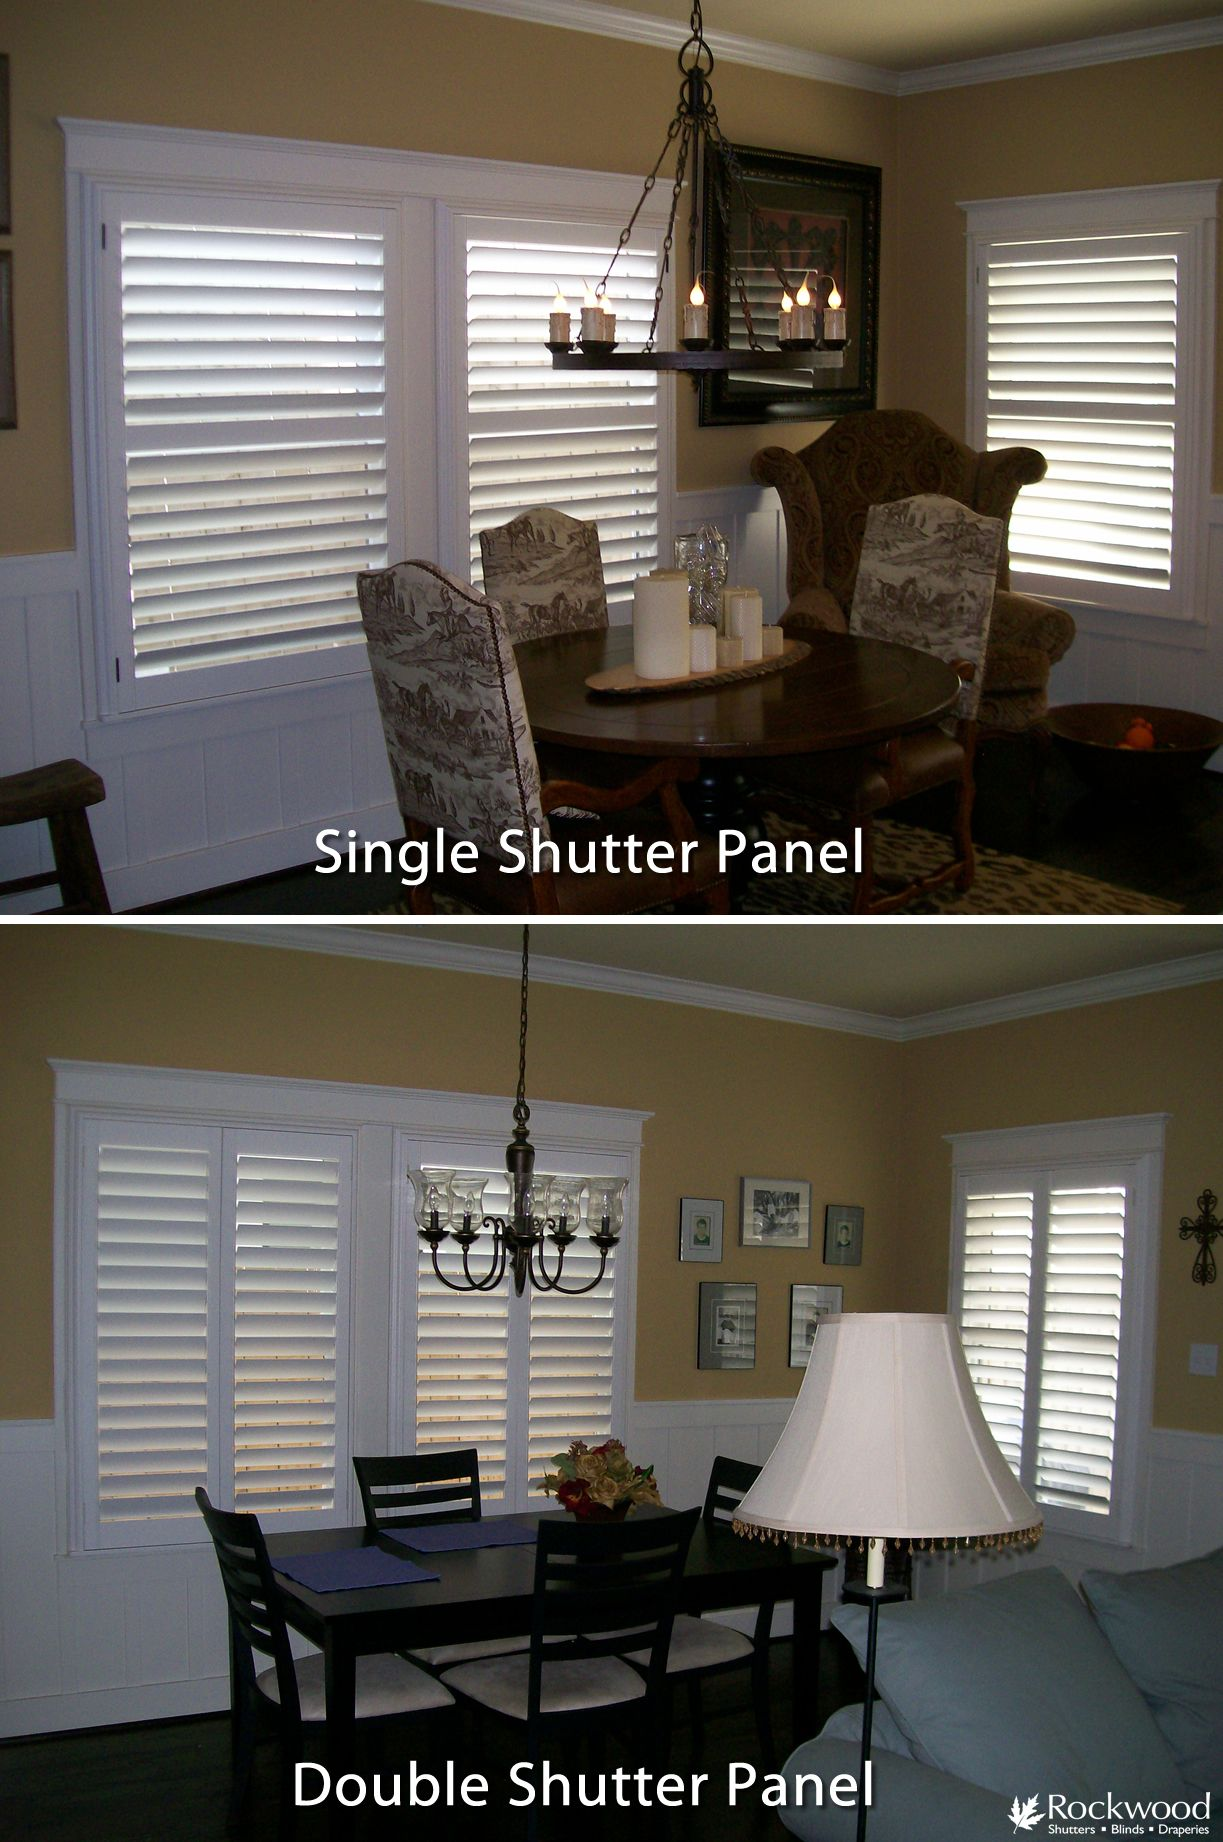 Double Panel Shutters Vs Single Panel Shutters On A Wide